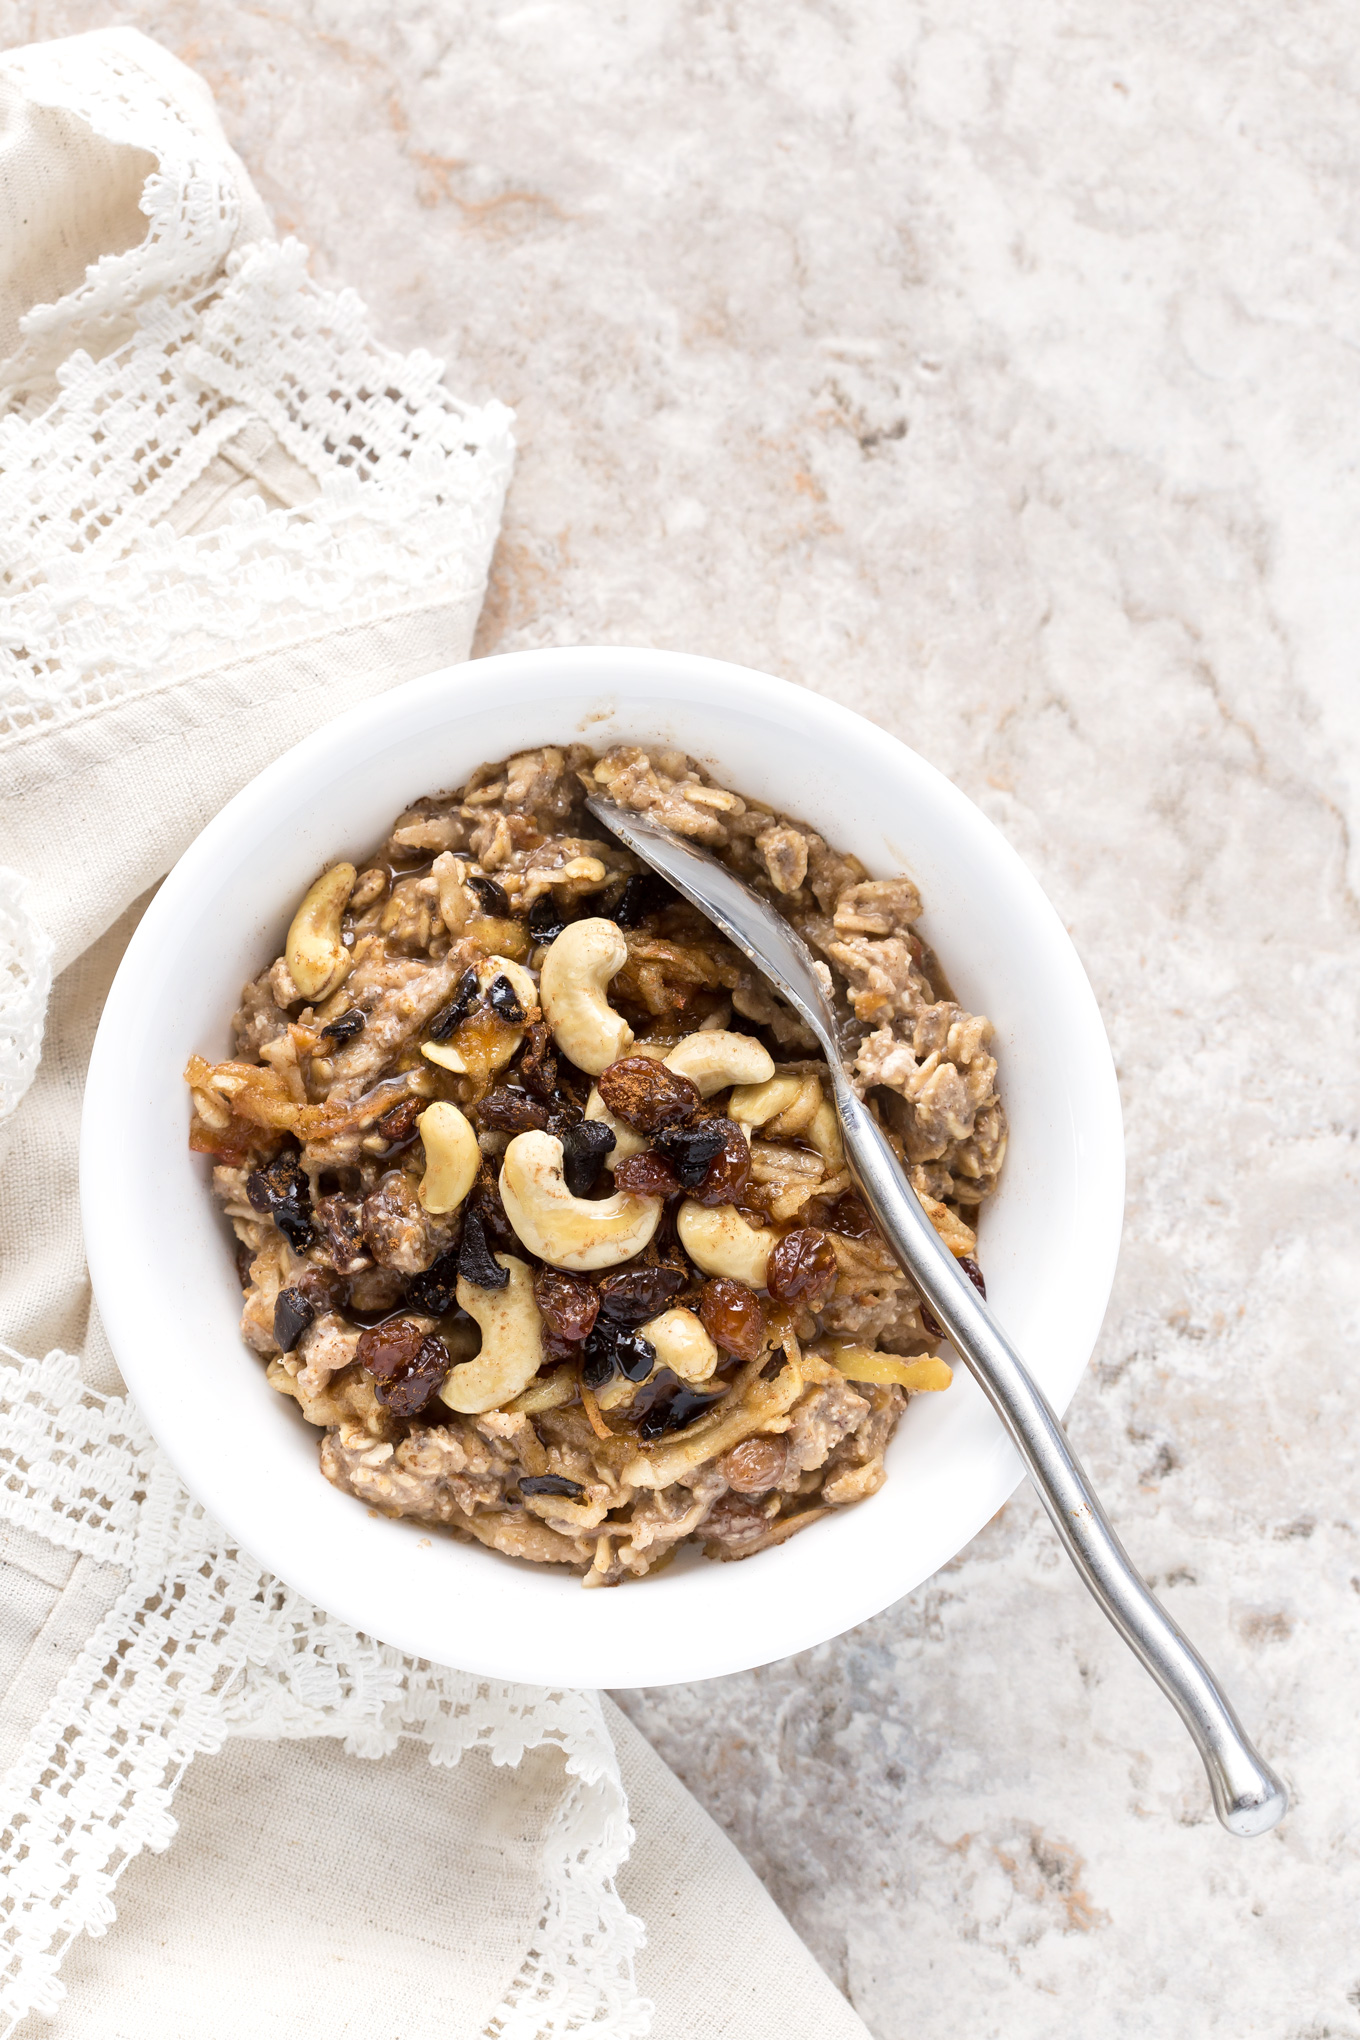 Cinnamon Apple Overnight Oats With Cashew Black Garlic Milk - gluten, dairy & refined sugar free breakfast. Delicious and vegan.